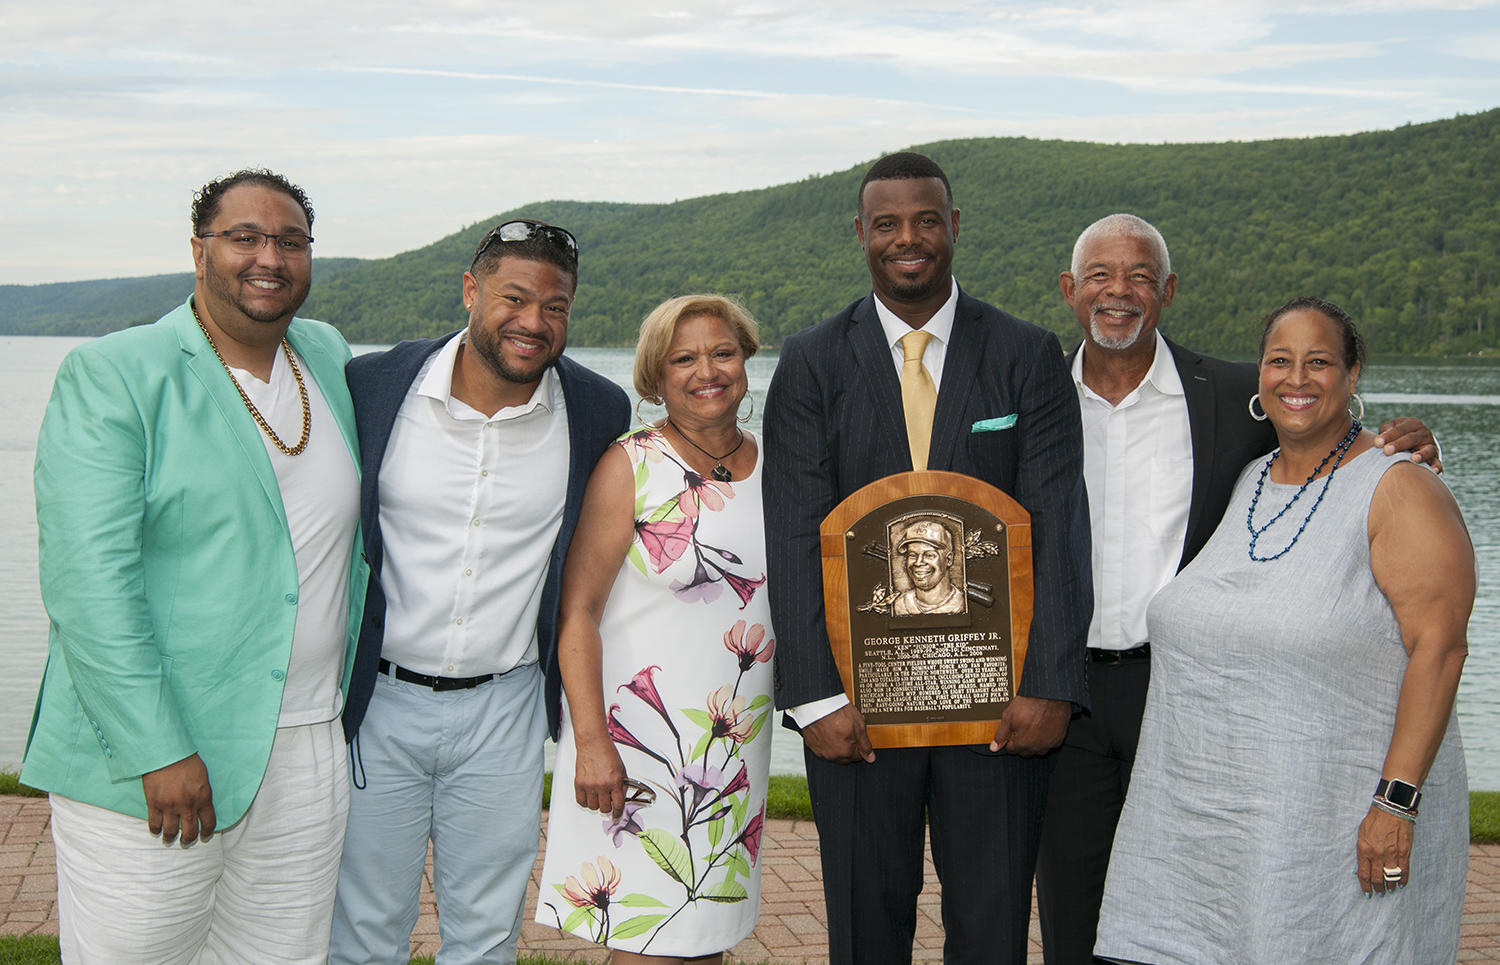 A close friend of Ken Griffey Sr. and Jr., Bobby Tolan attended Griffey Jr.'s Hall of Fame induction ceremony in 2016. He is pictured above, second from the right. (By Photographer Milo Stewart Jr./National Baseball Hall of Fame and Museum)